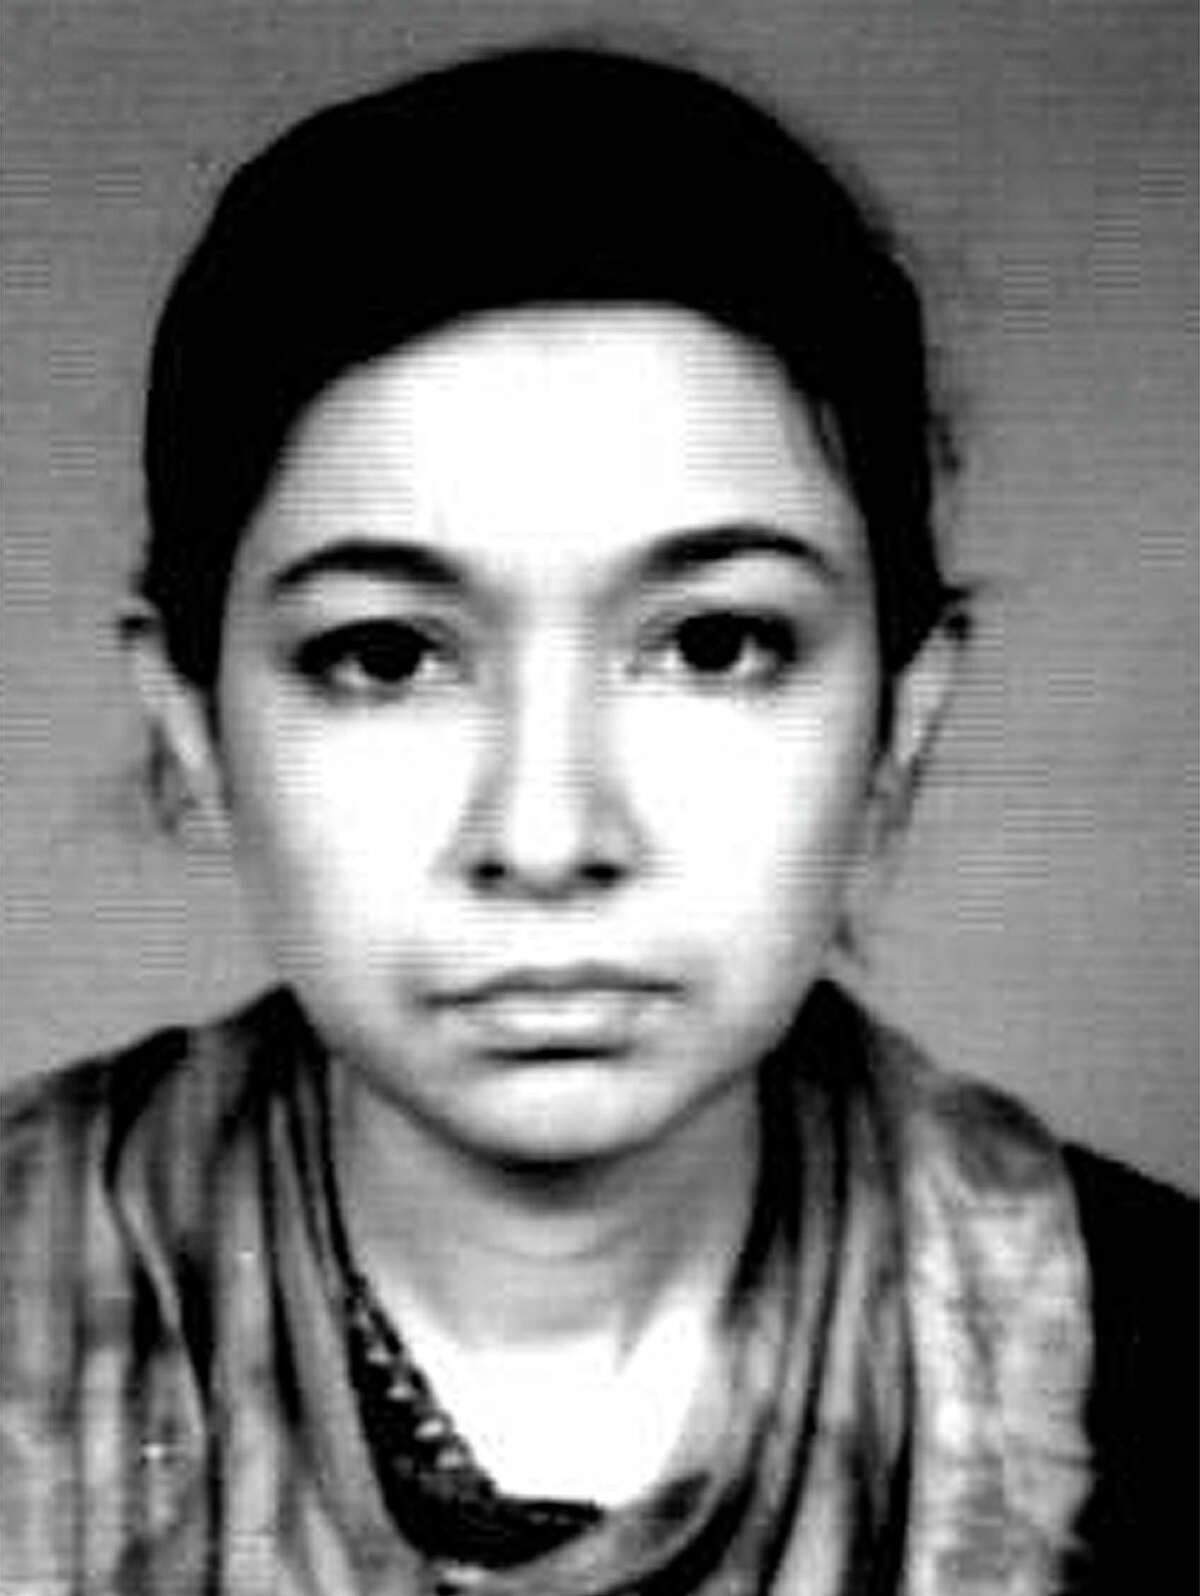 1. Aafia Siddiquiis known as Al-Qaeda's highest-ranking female associate. She weighed 90 pounds and stood 5'4